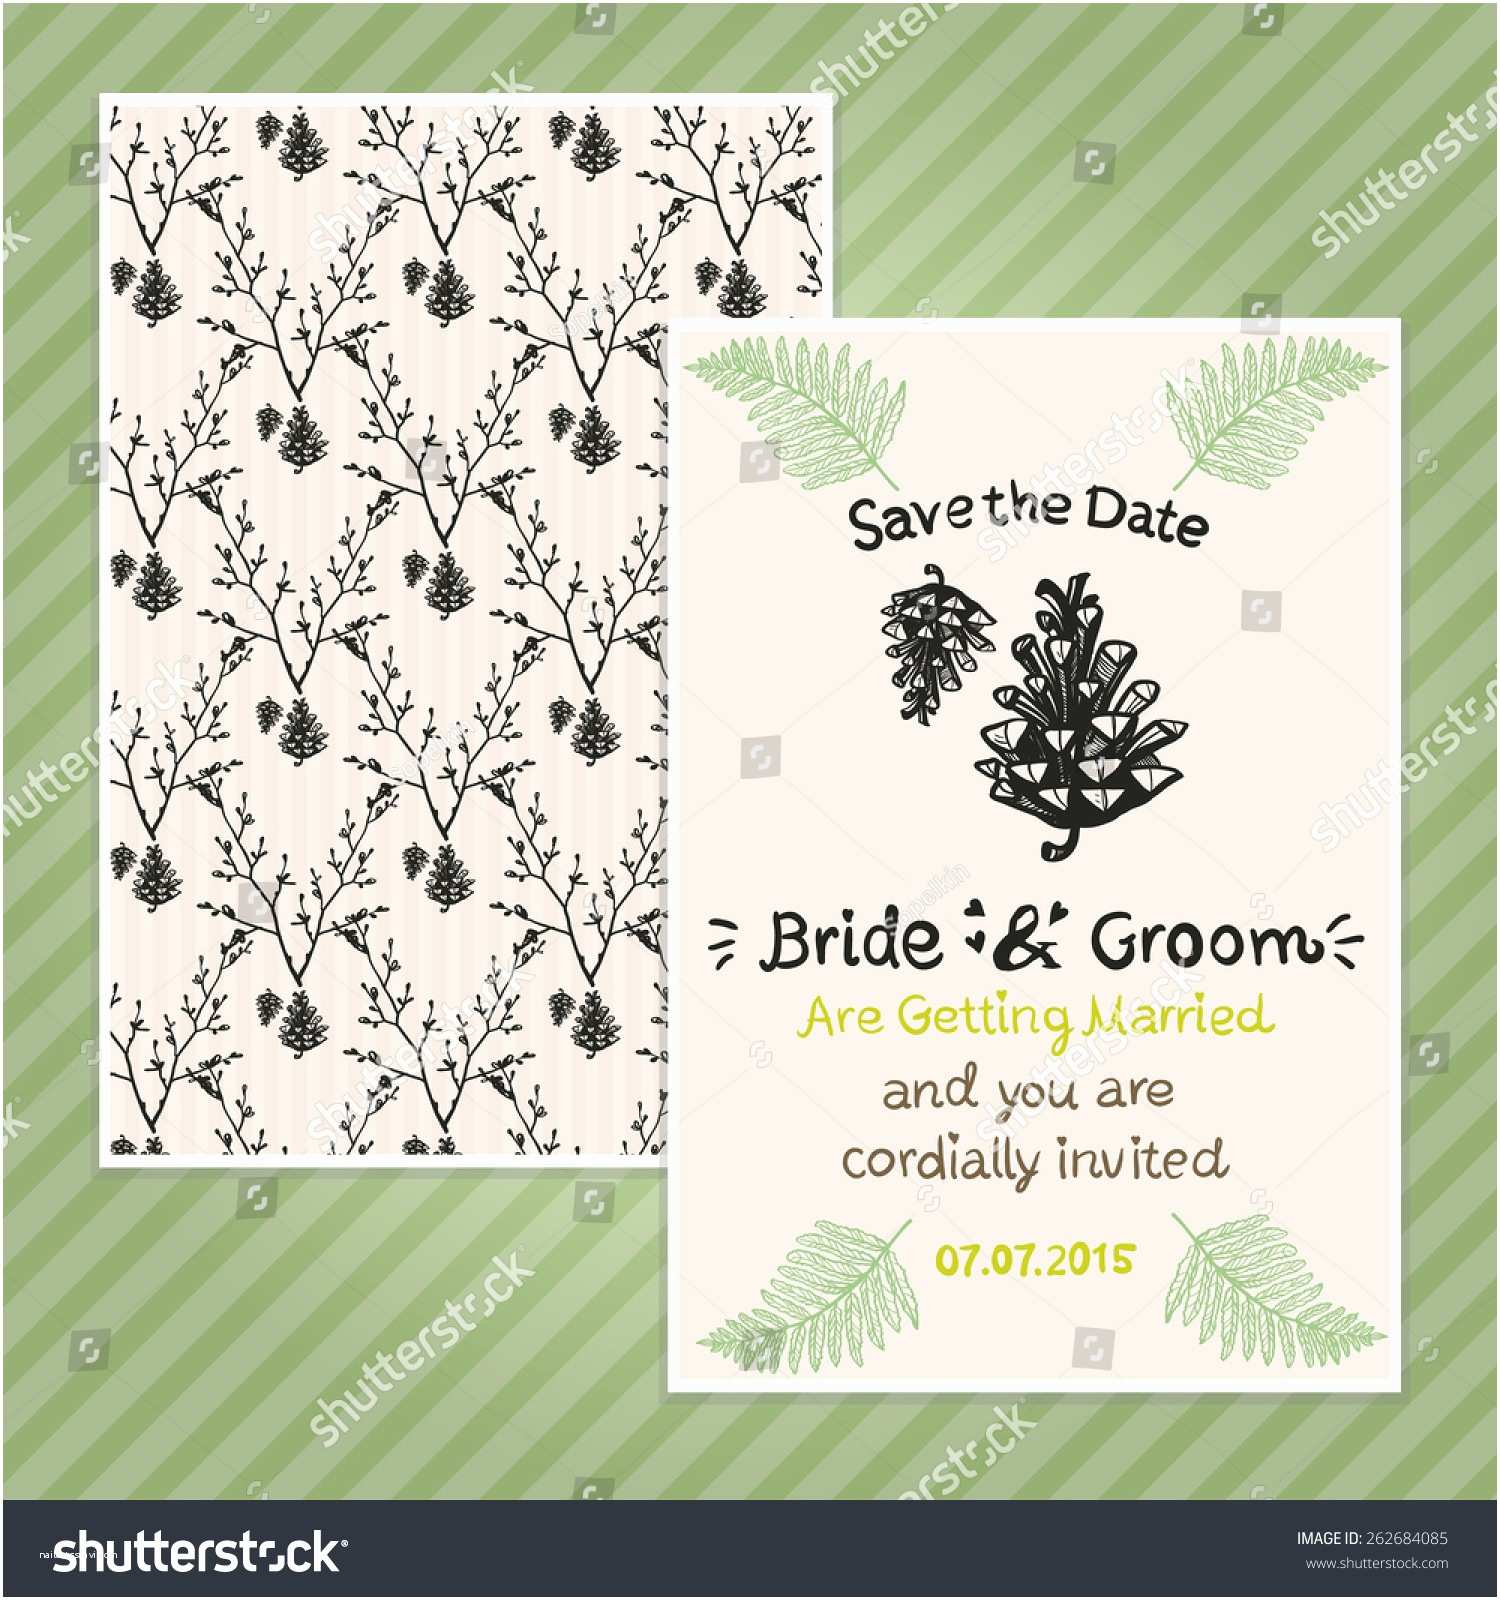 Double Sided Wedding Invitations Double Sided Vintage Invitation Card Wedding Stock Vector